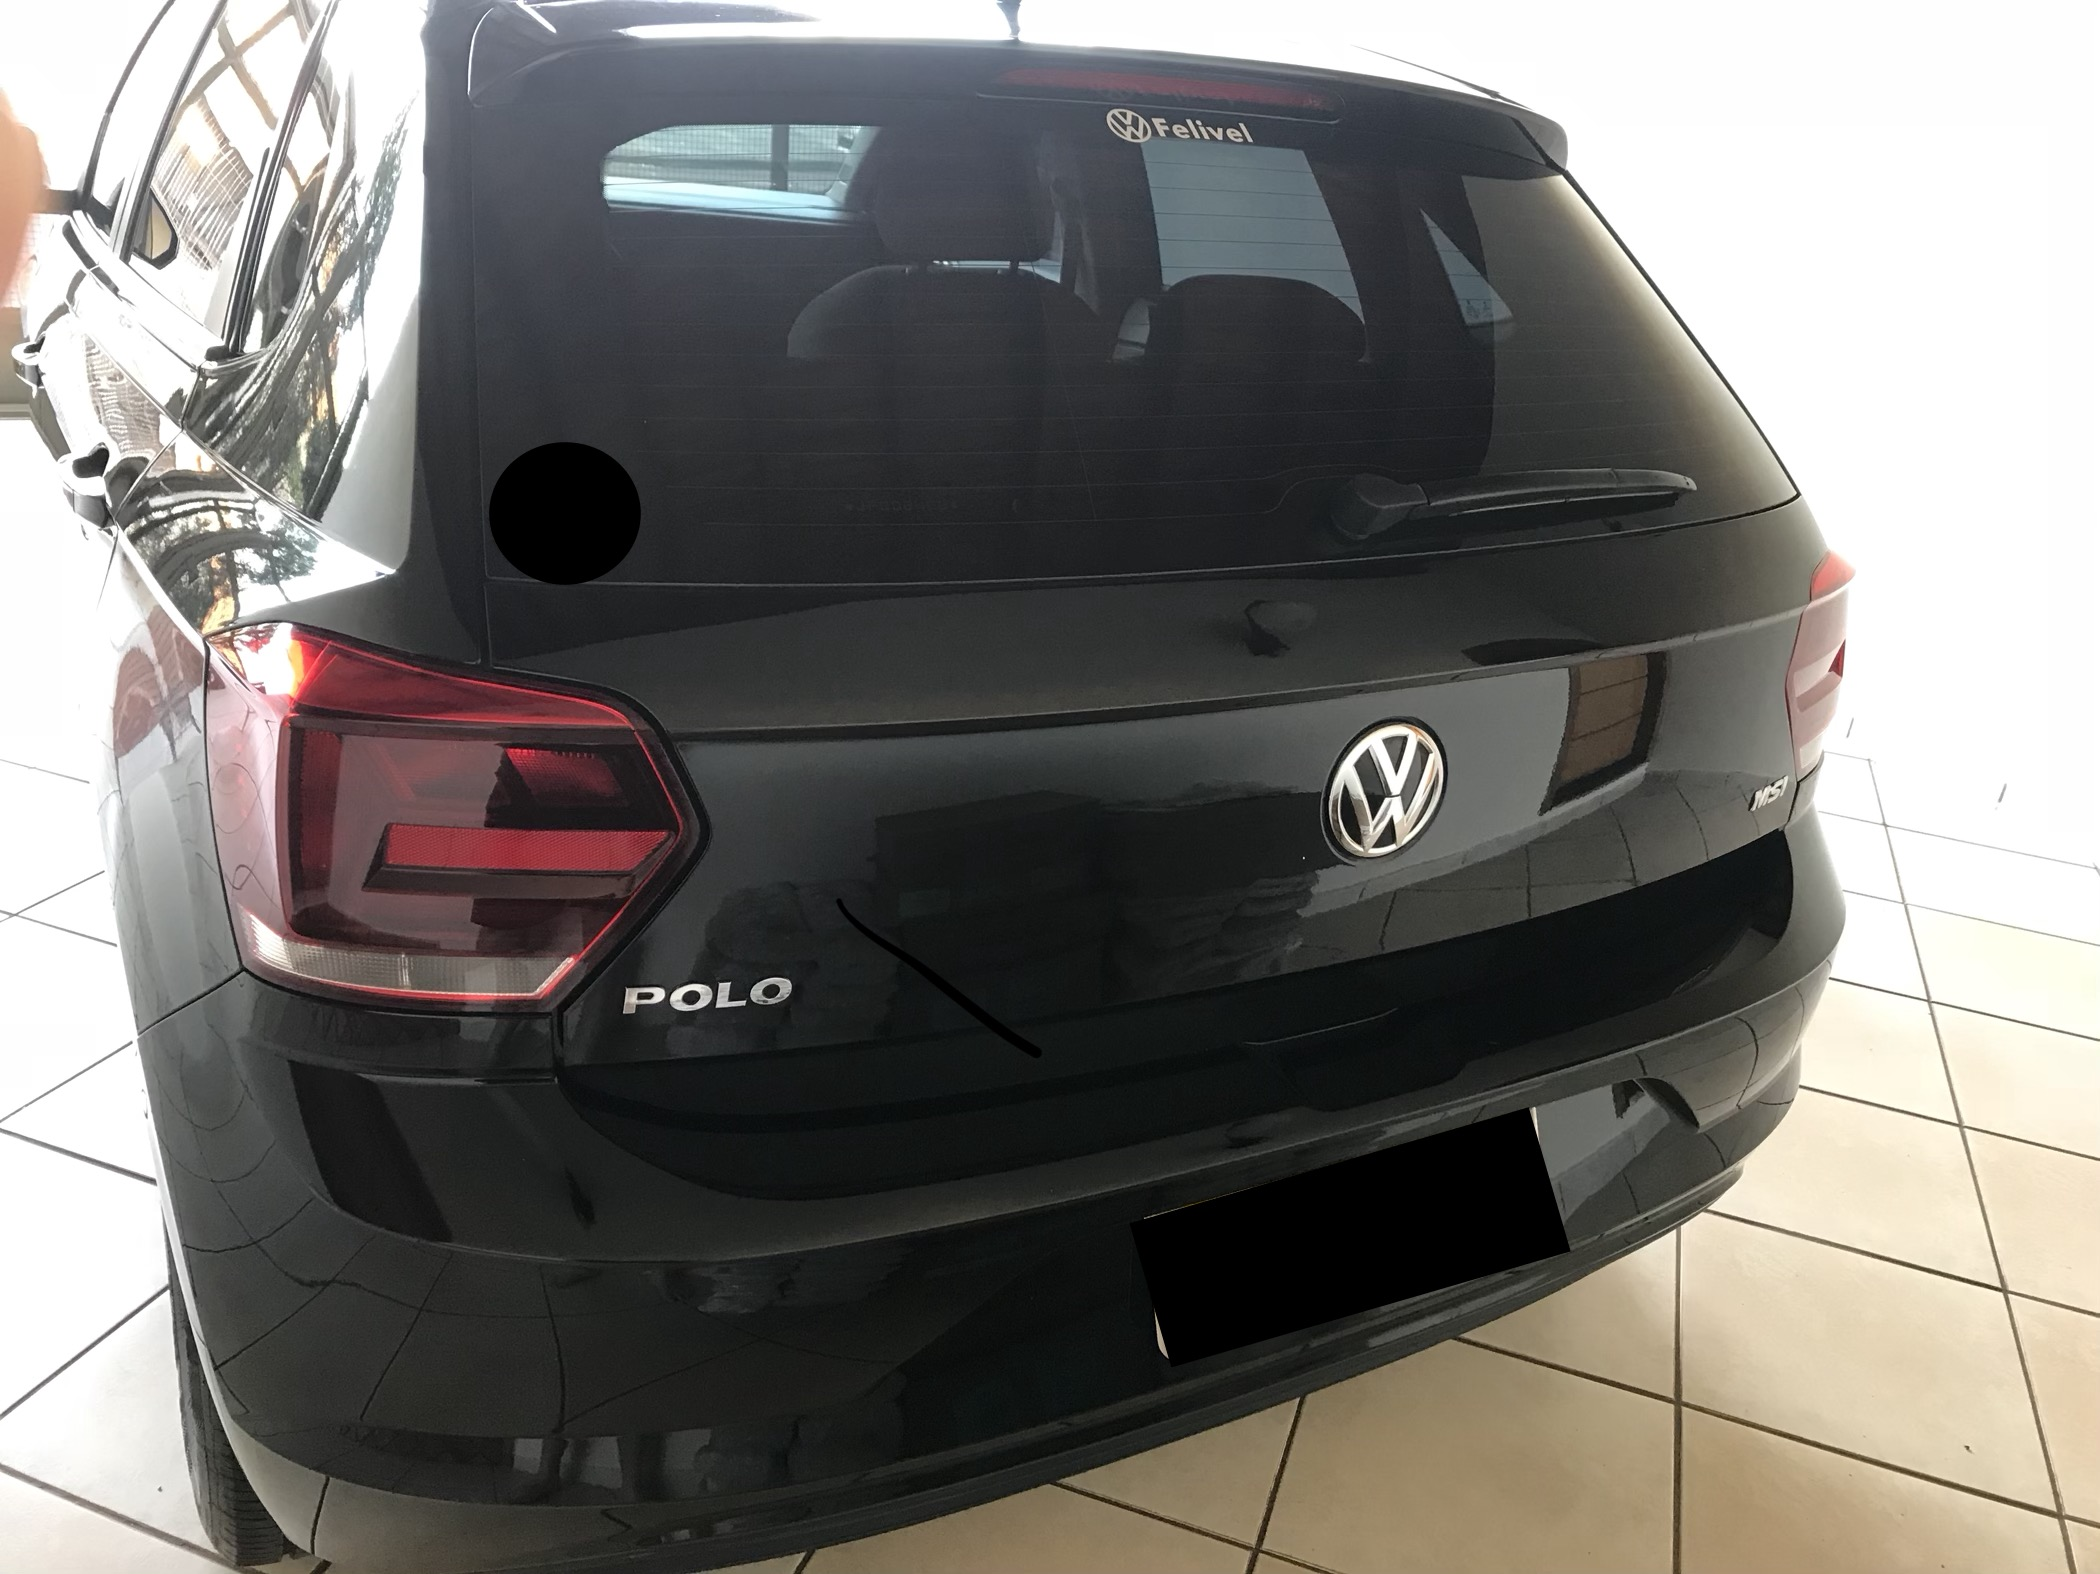 Polo 1.6 MSI Flex Manual 2017/2018 - 2017